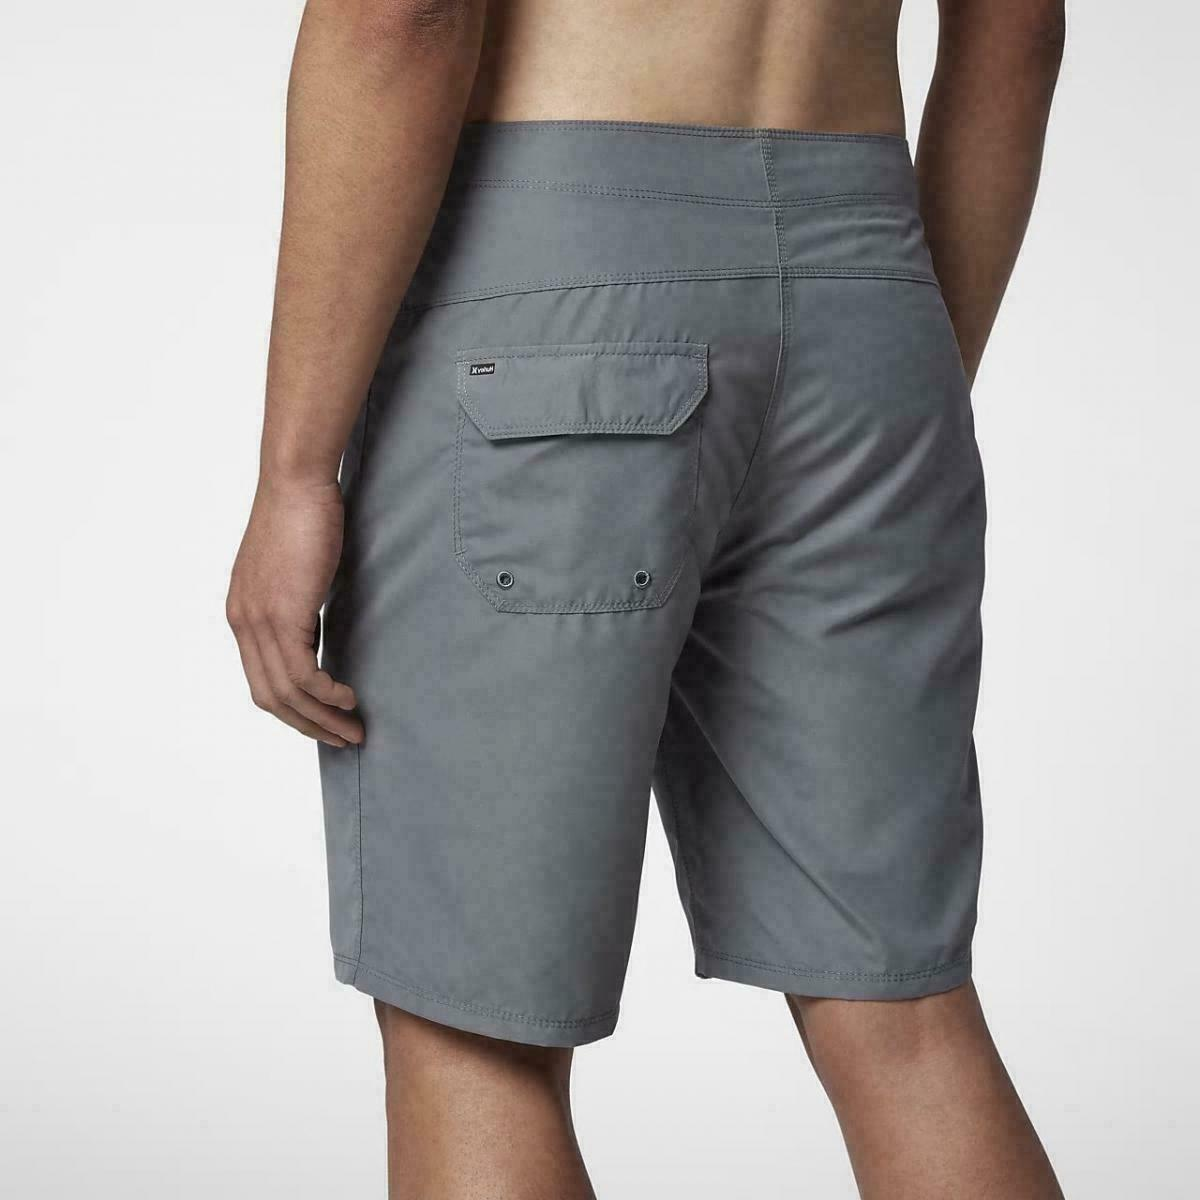 Hurley One 2.0 Shorts